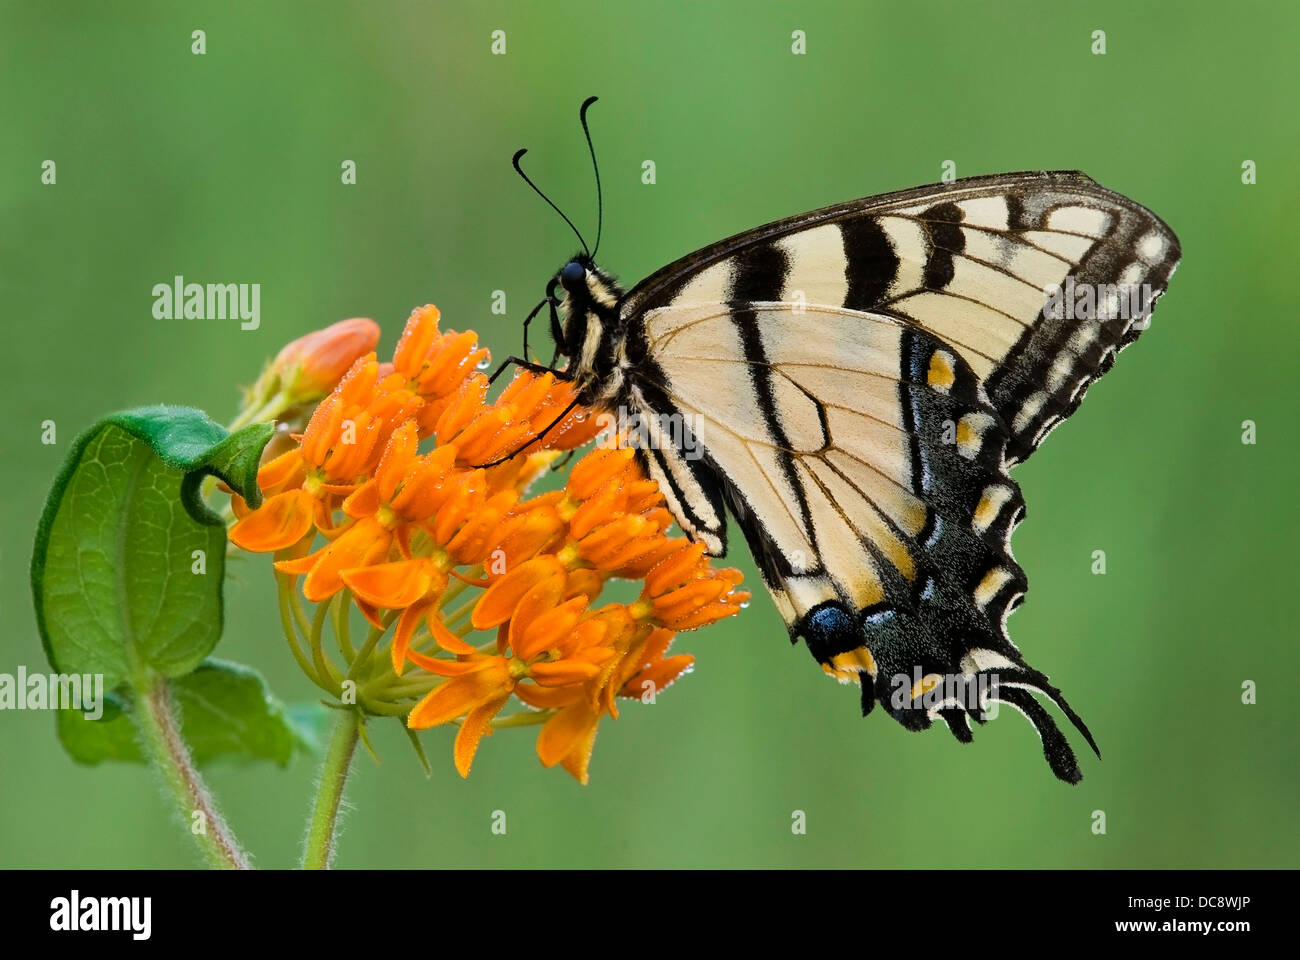 Eastern Tiger Swallowtail Butterfly Papilio glaucus feeding on Butterfly Weed Asclepias tuberosa  E USA Stock Photo